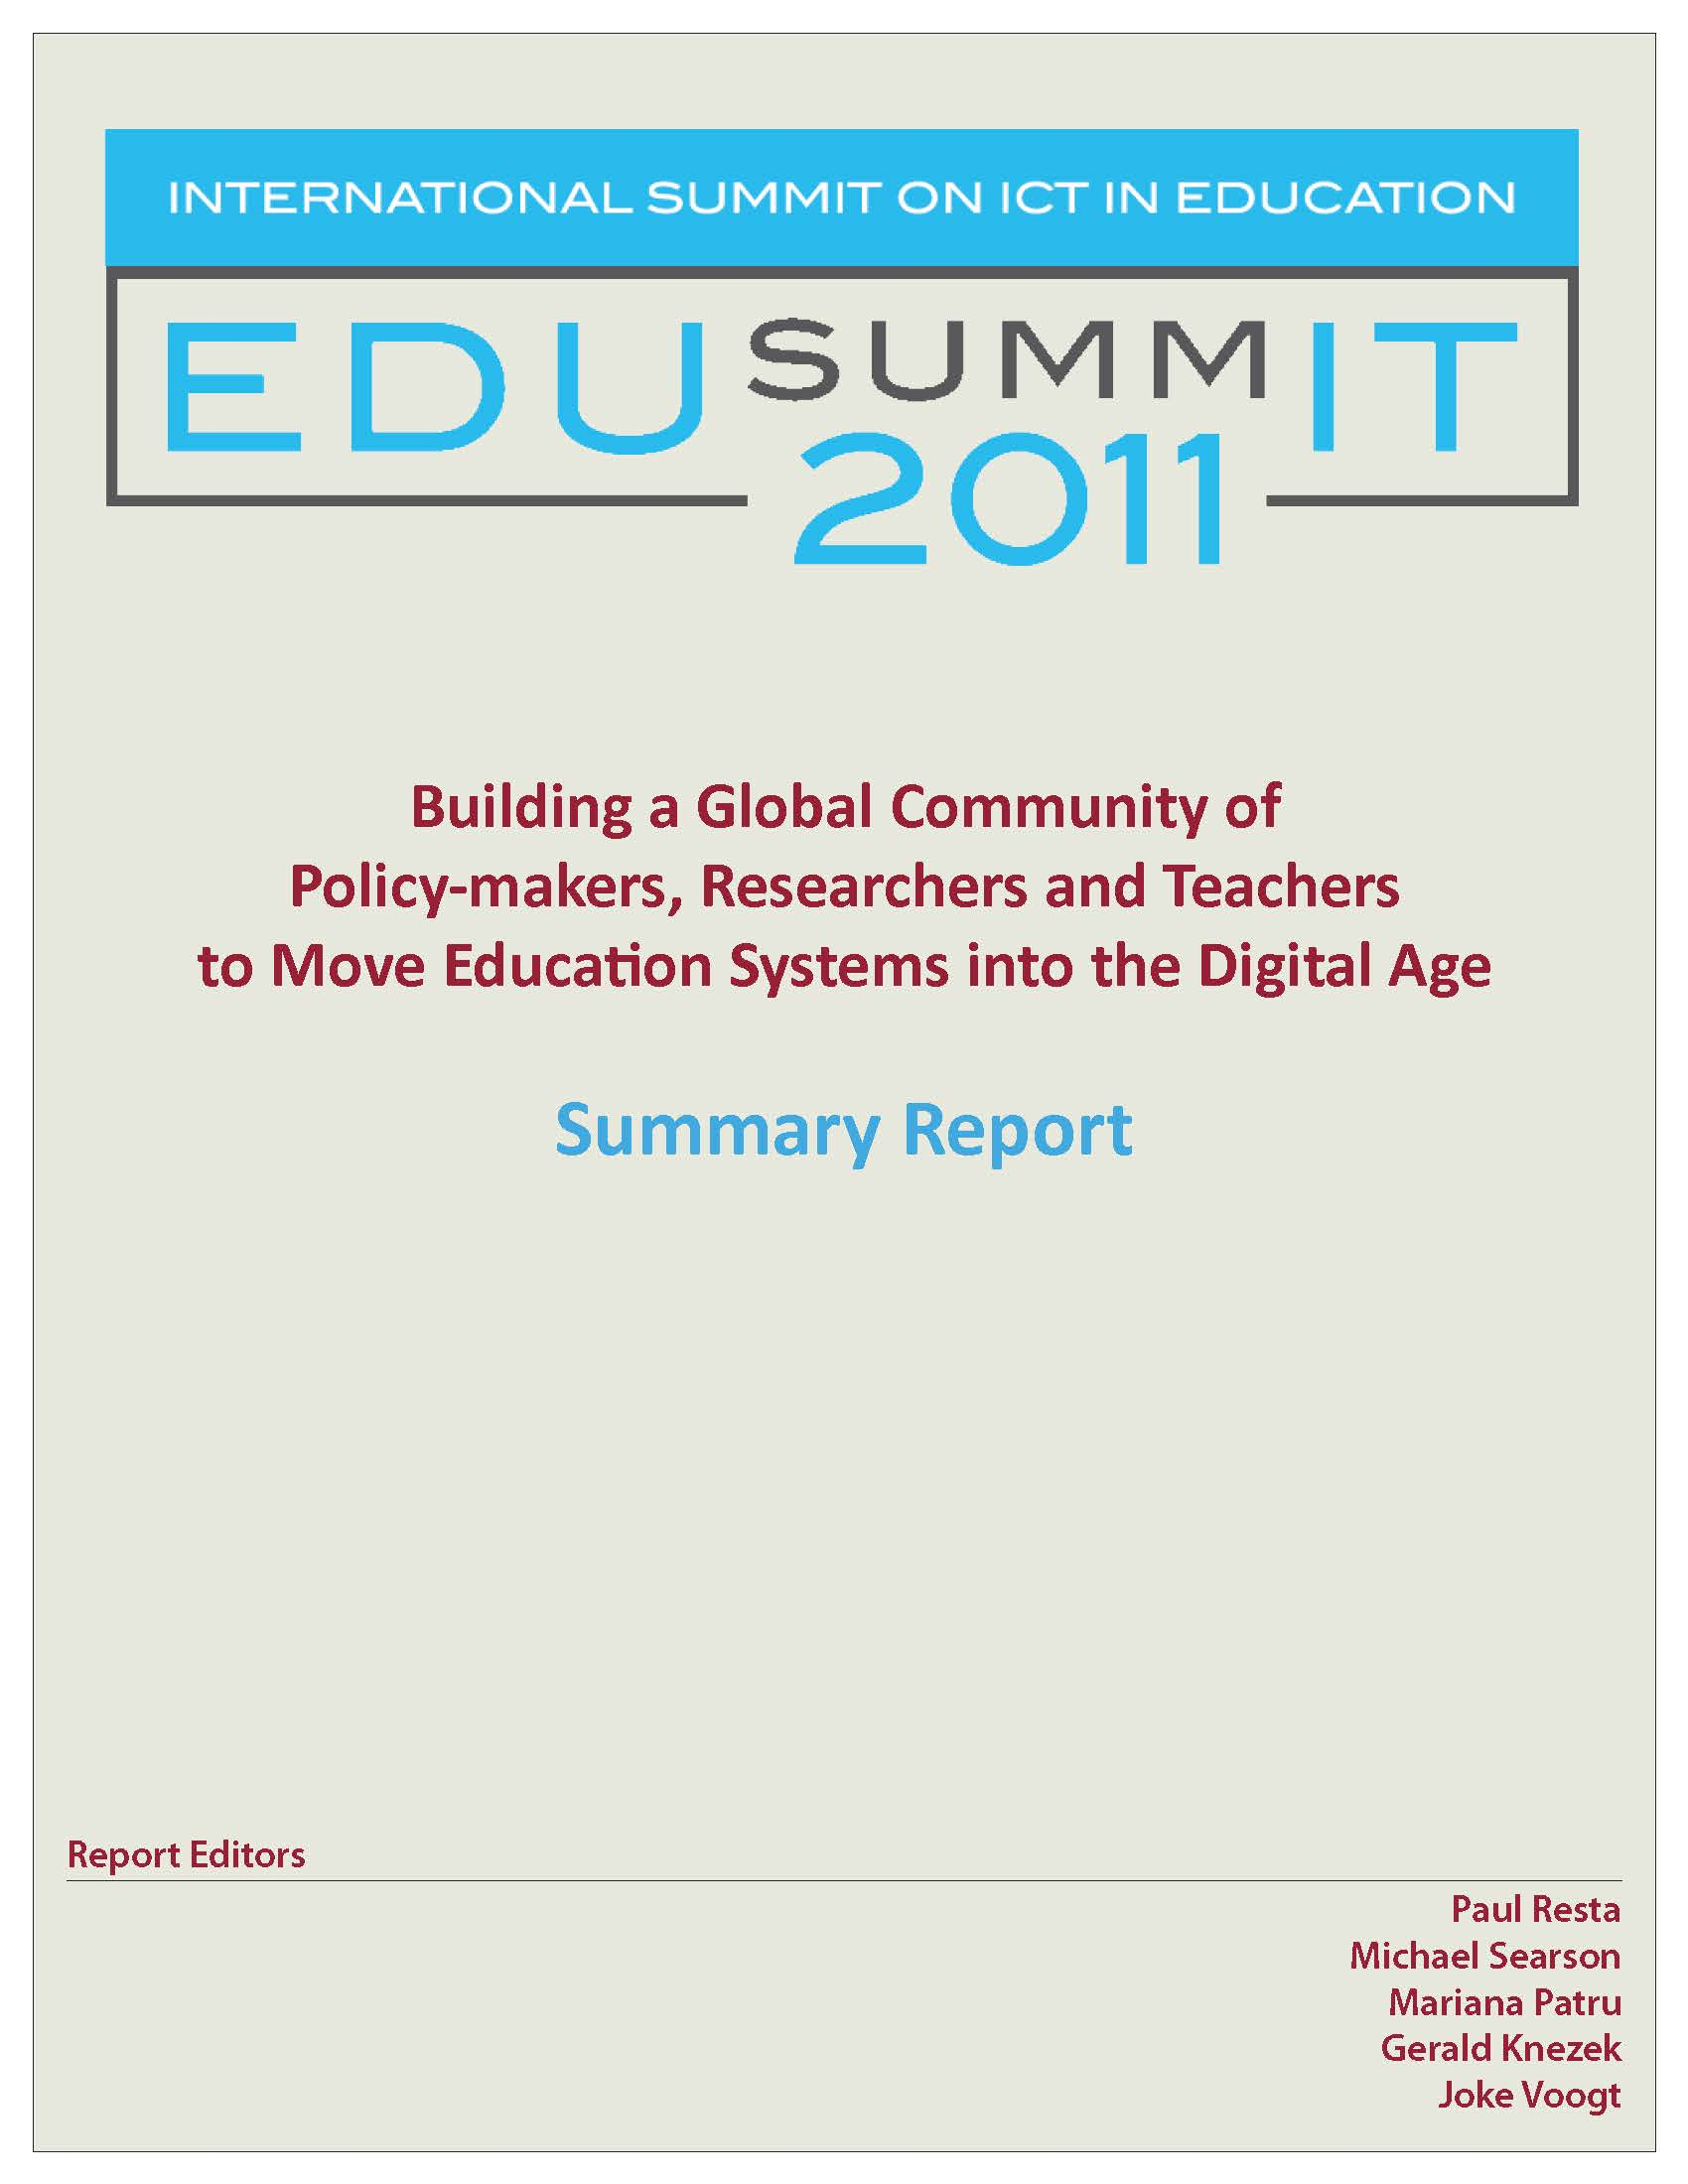 Logo for Building a Global Community of Policy-makers, Researchers, and Teachers to Move Education Systems into the Digital Age. Summary report